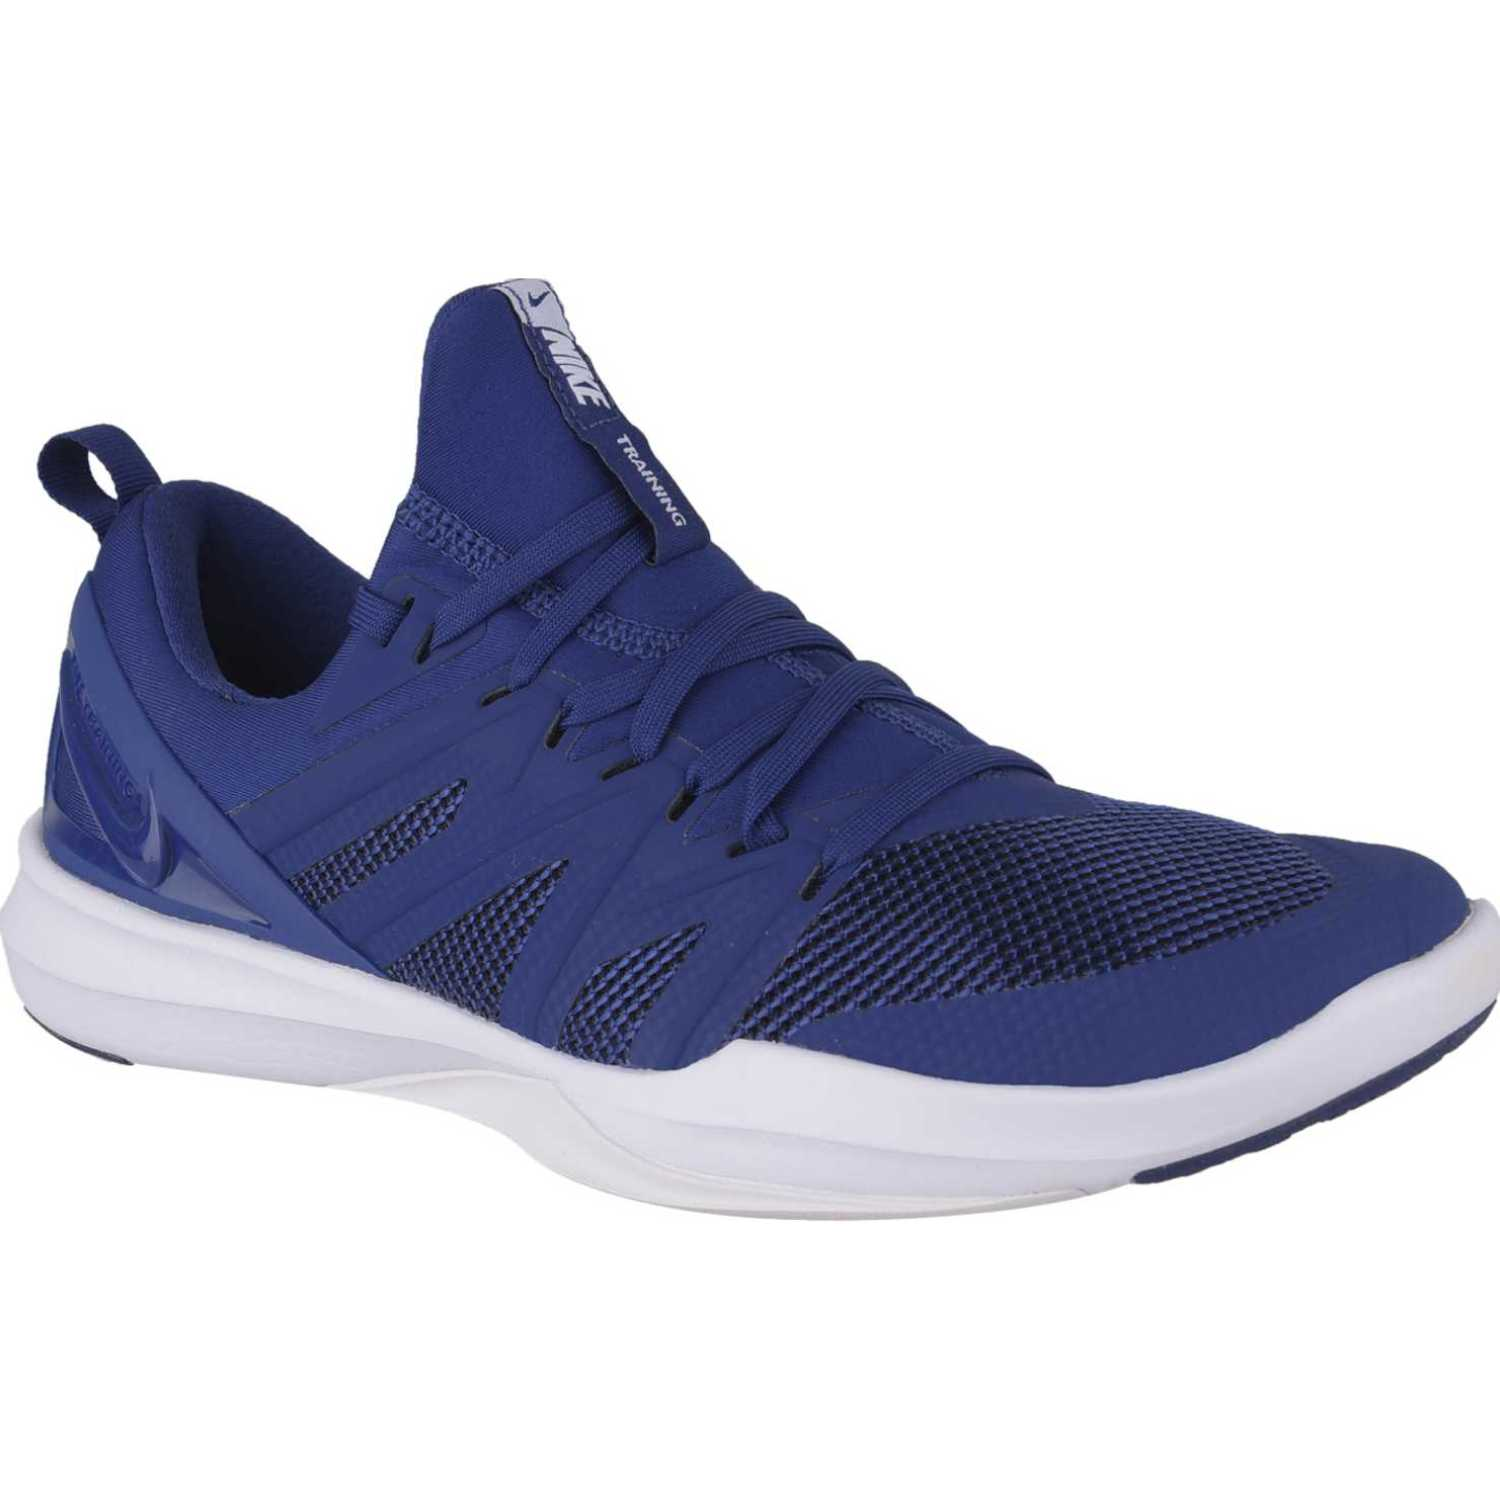 Nike nike victory elite trainer Azul / blanco Hombres